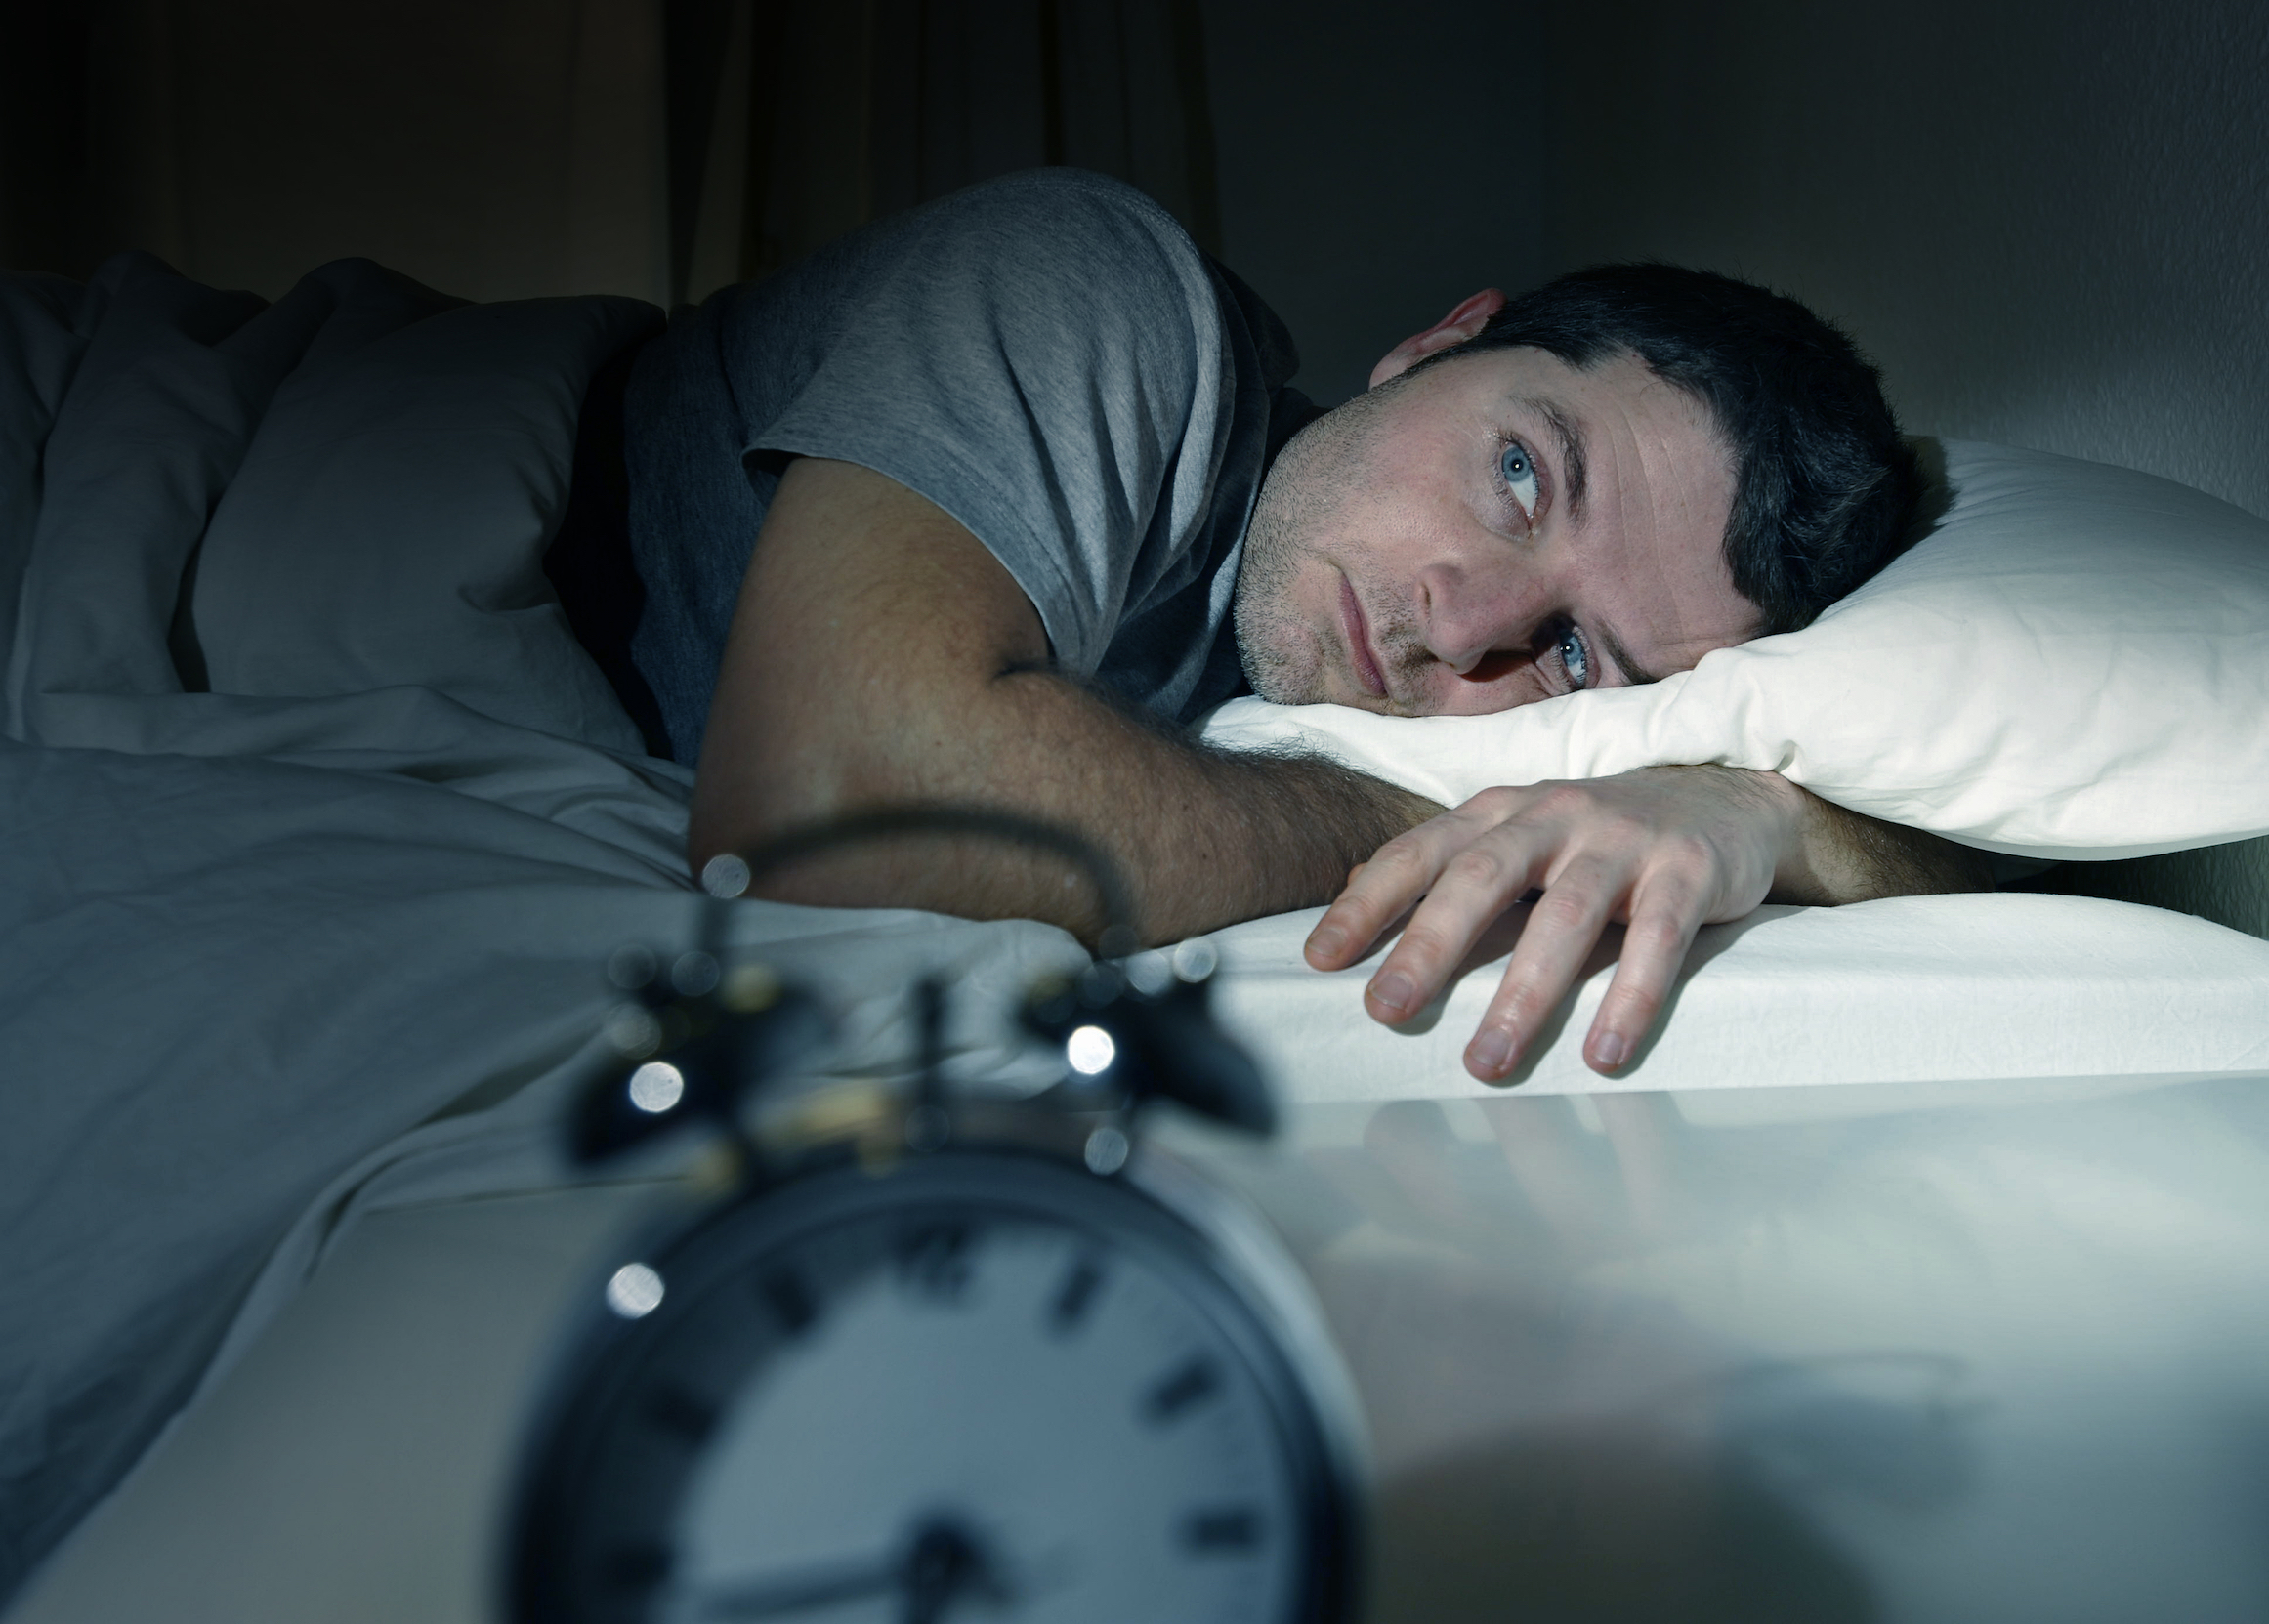 Surprising new research has found that the muscles contain a key circadian rhythm protein that helps regulate our sleep patterns.